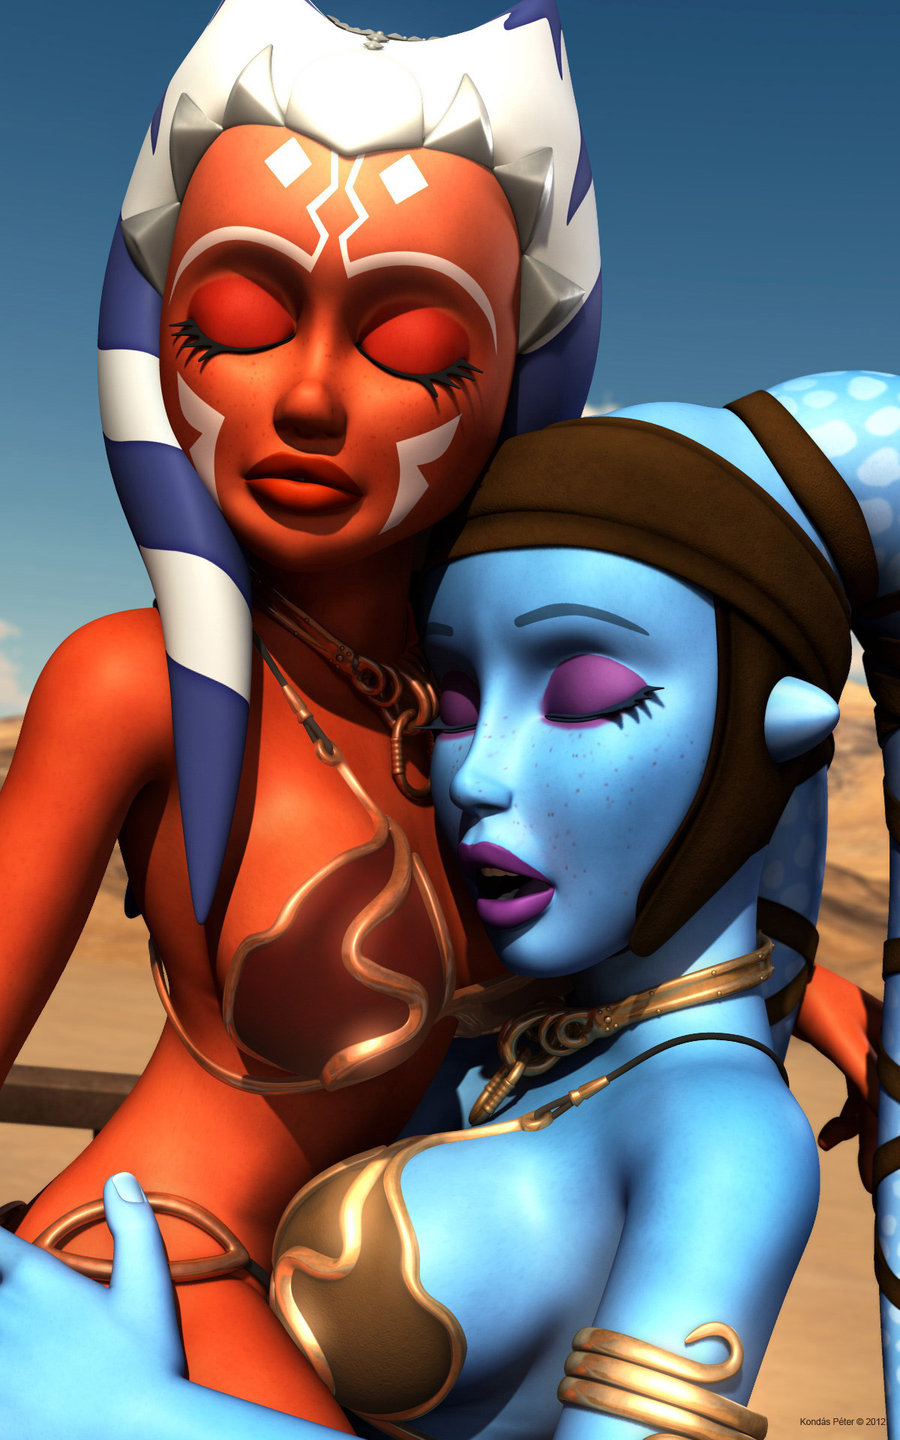 Ahsoka tano hot and naked hentai videos